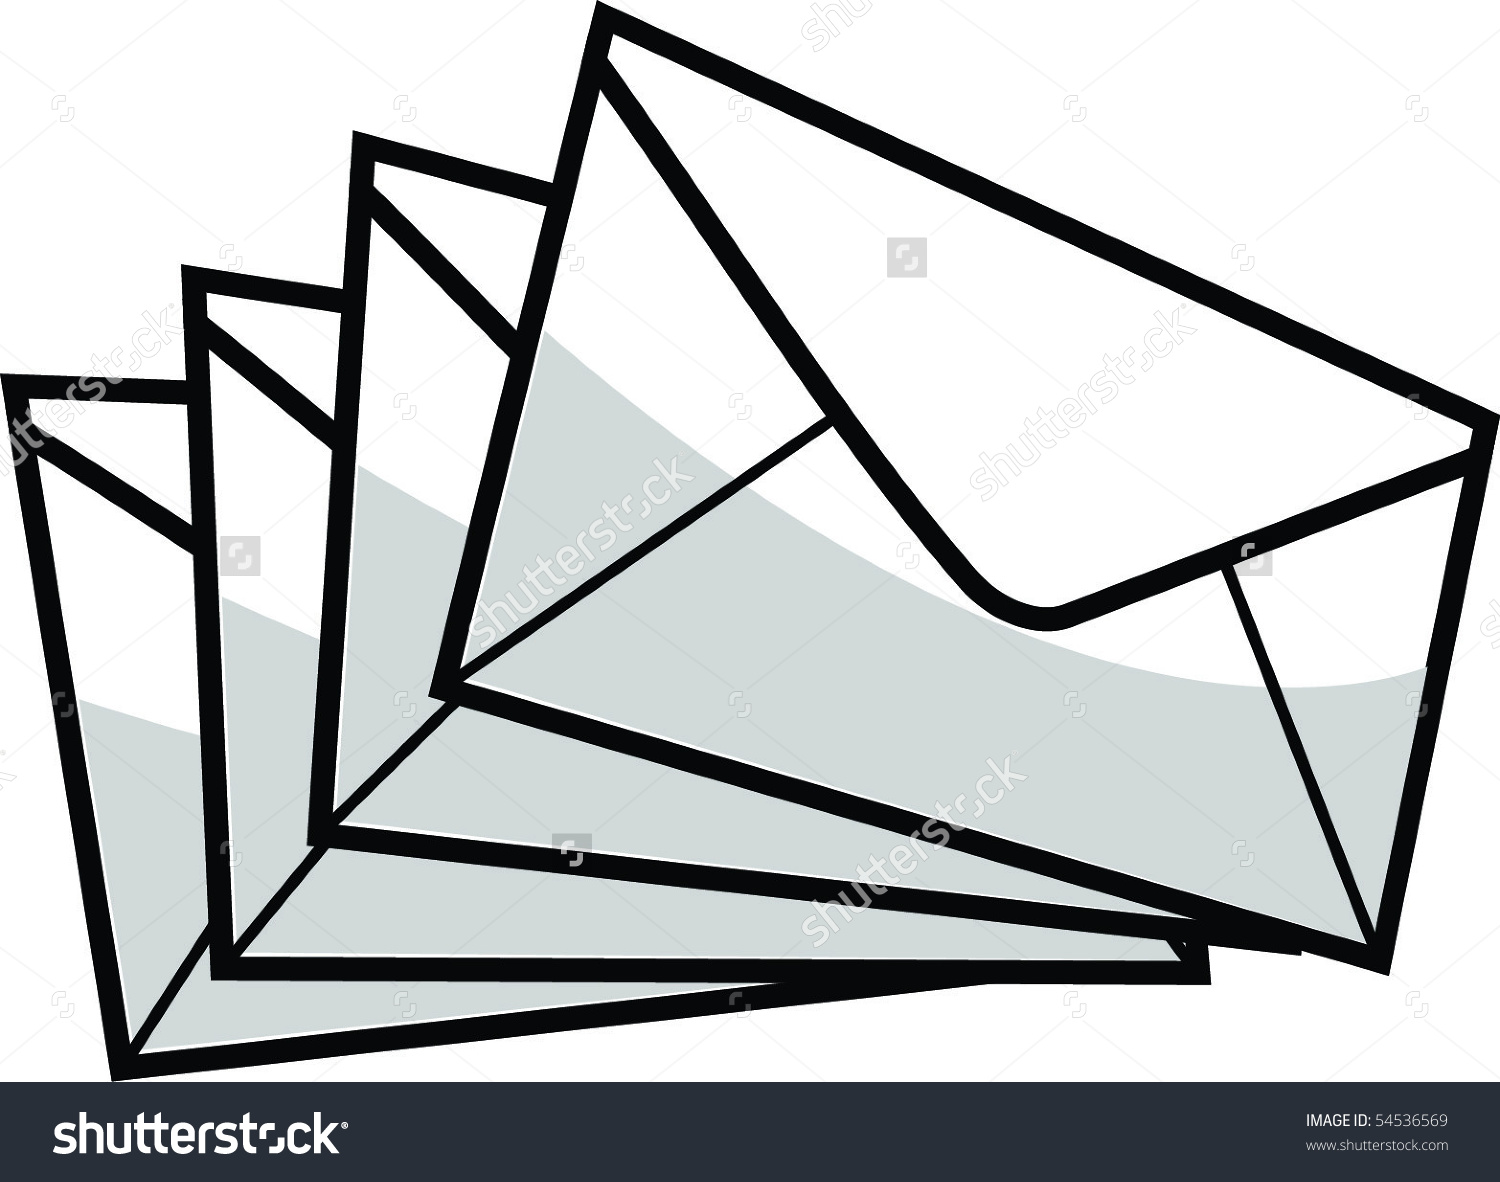 Pile Closed Envelopes Vector Image Stock Vector 54536569.